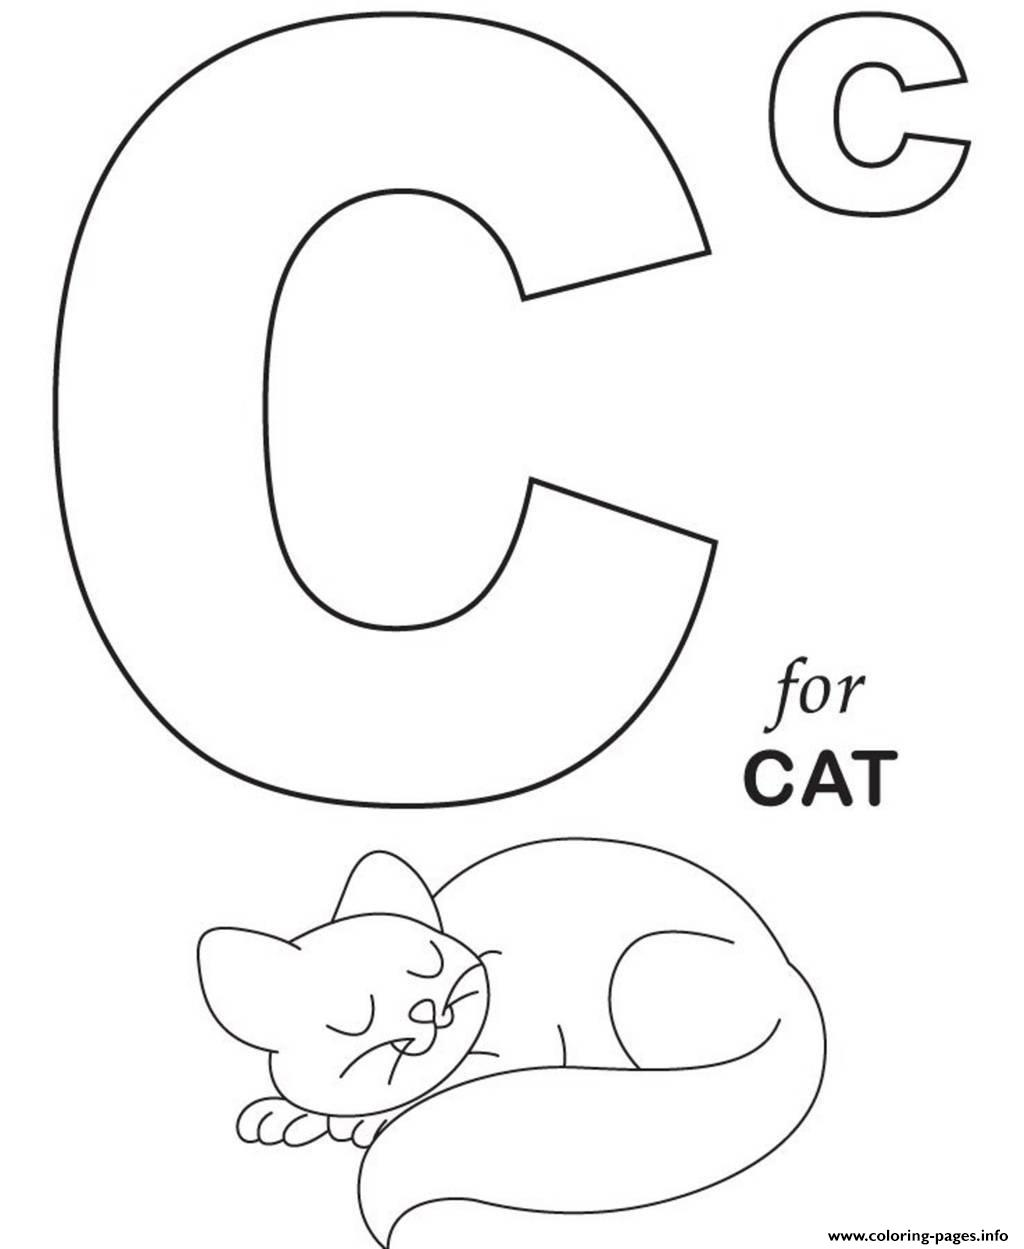 c is for caterpillar coloring page c is for cat coloring page free c is for cat coloring page is page coloring caterpillar c for